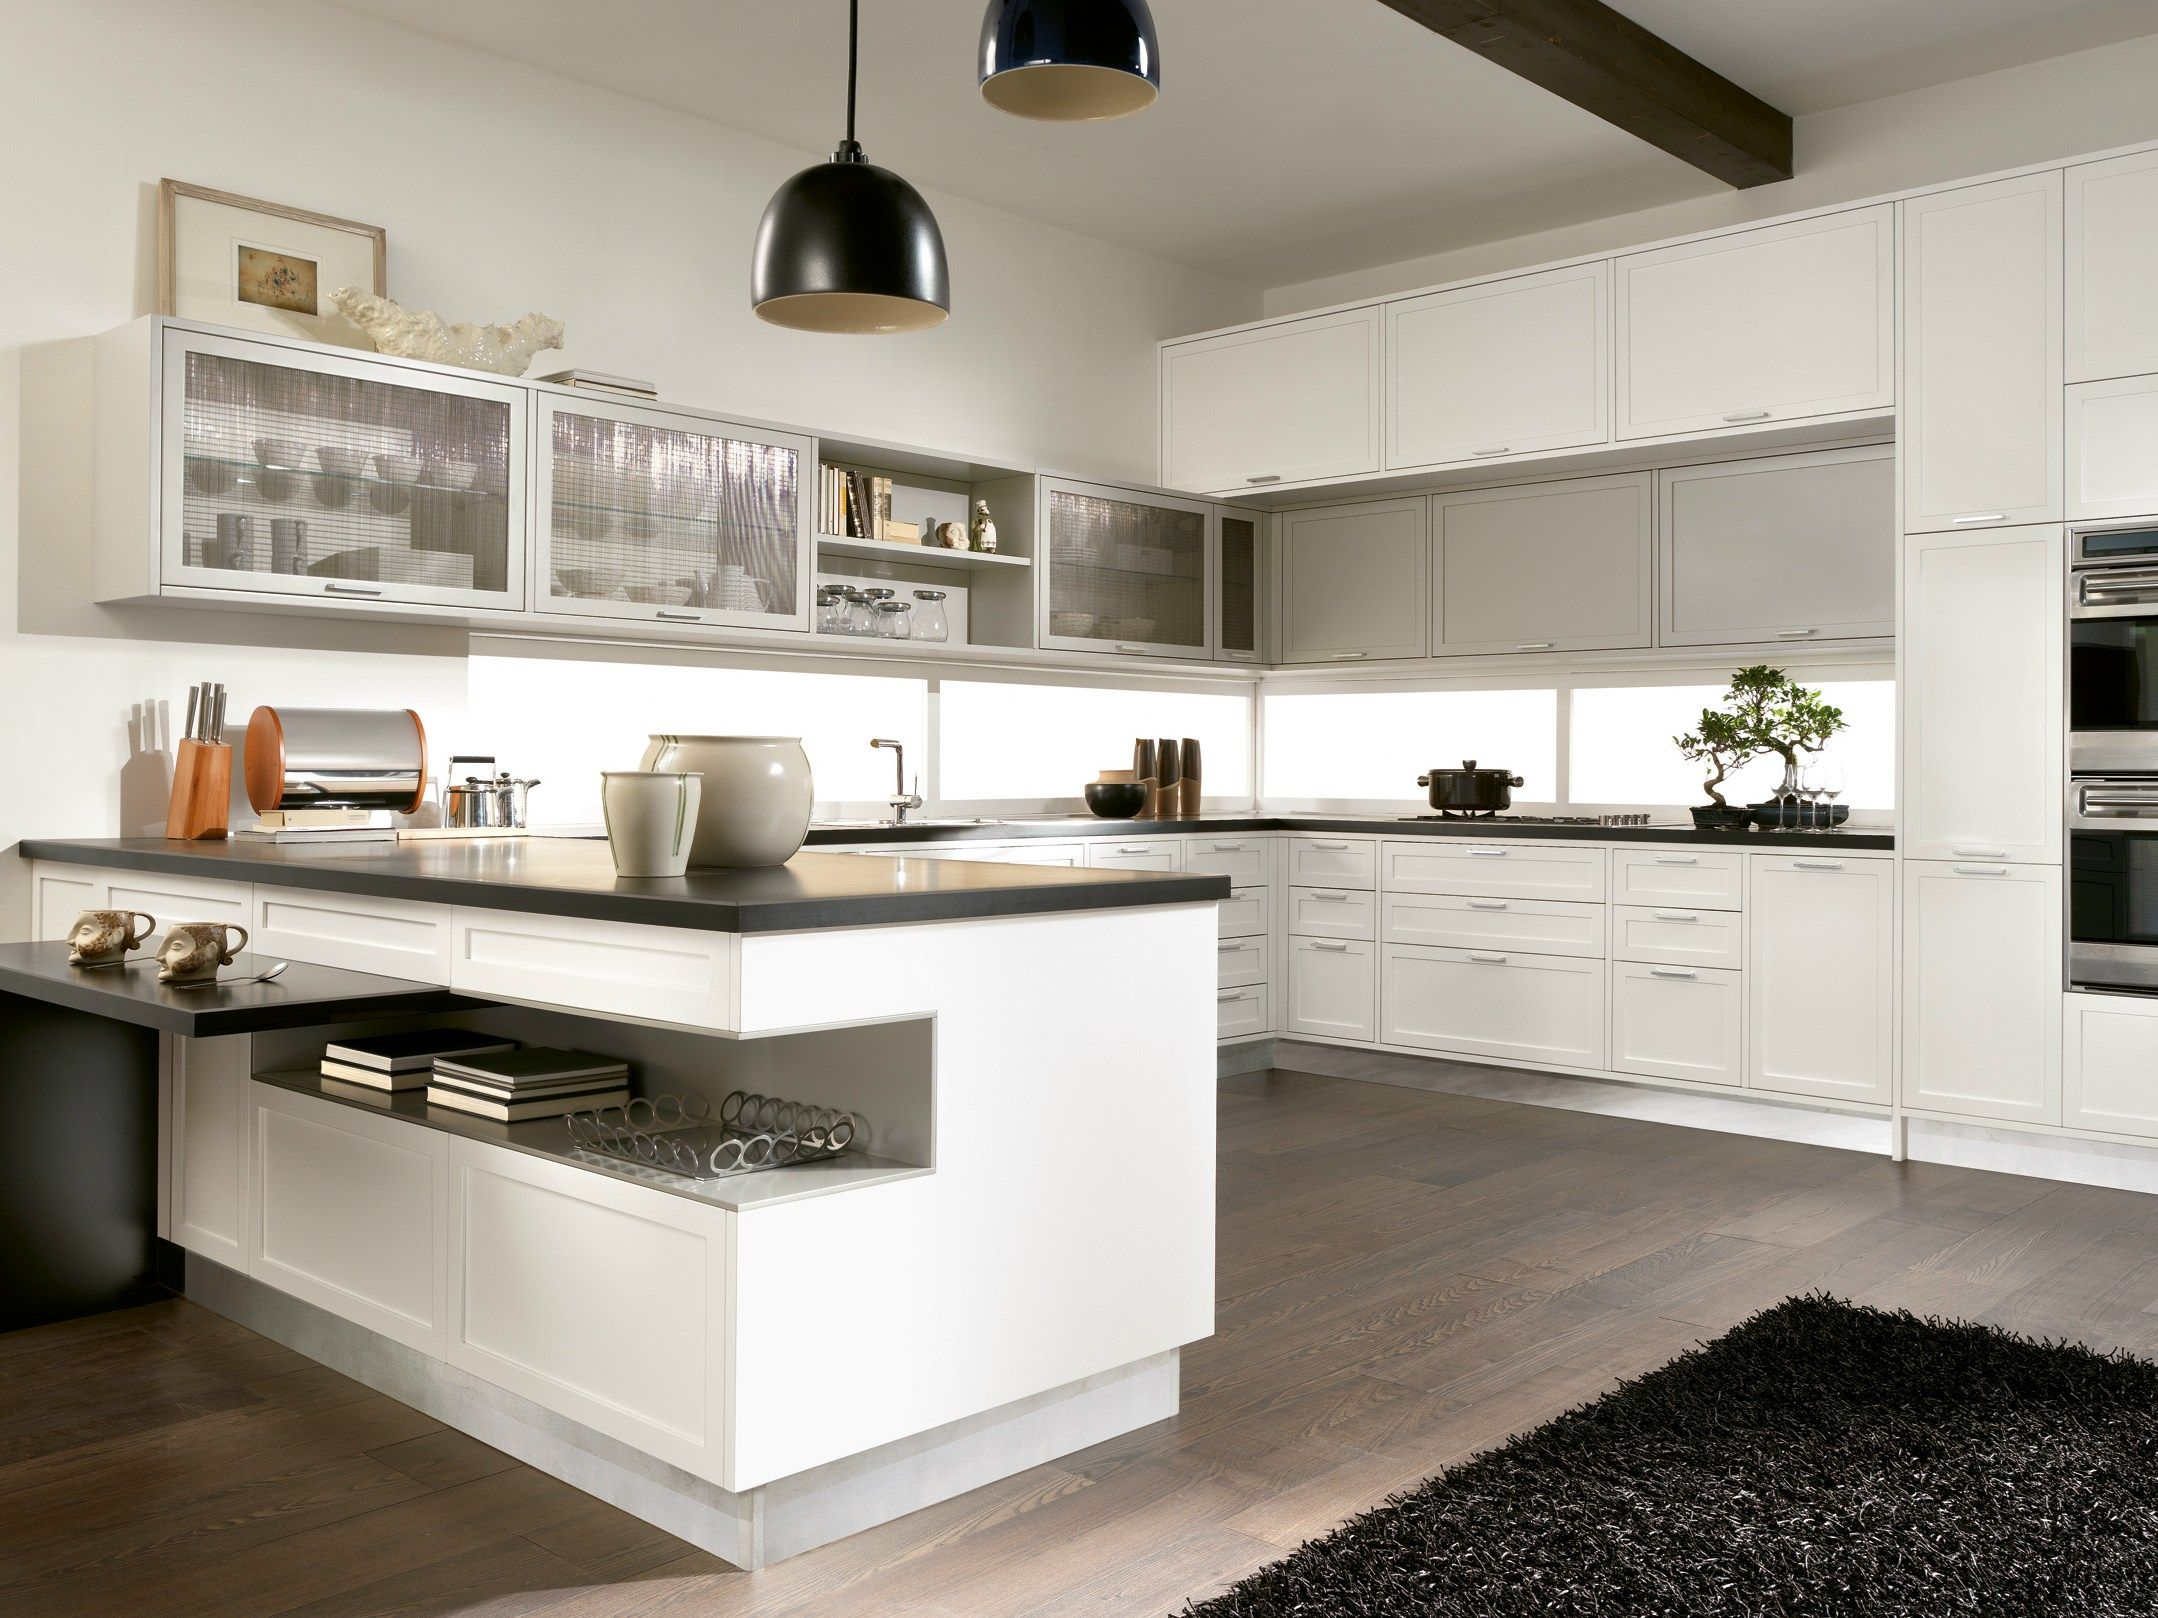 Emejing aster cucine spa pictures ideas design 2017 - Aster cucine spa ...